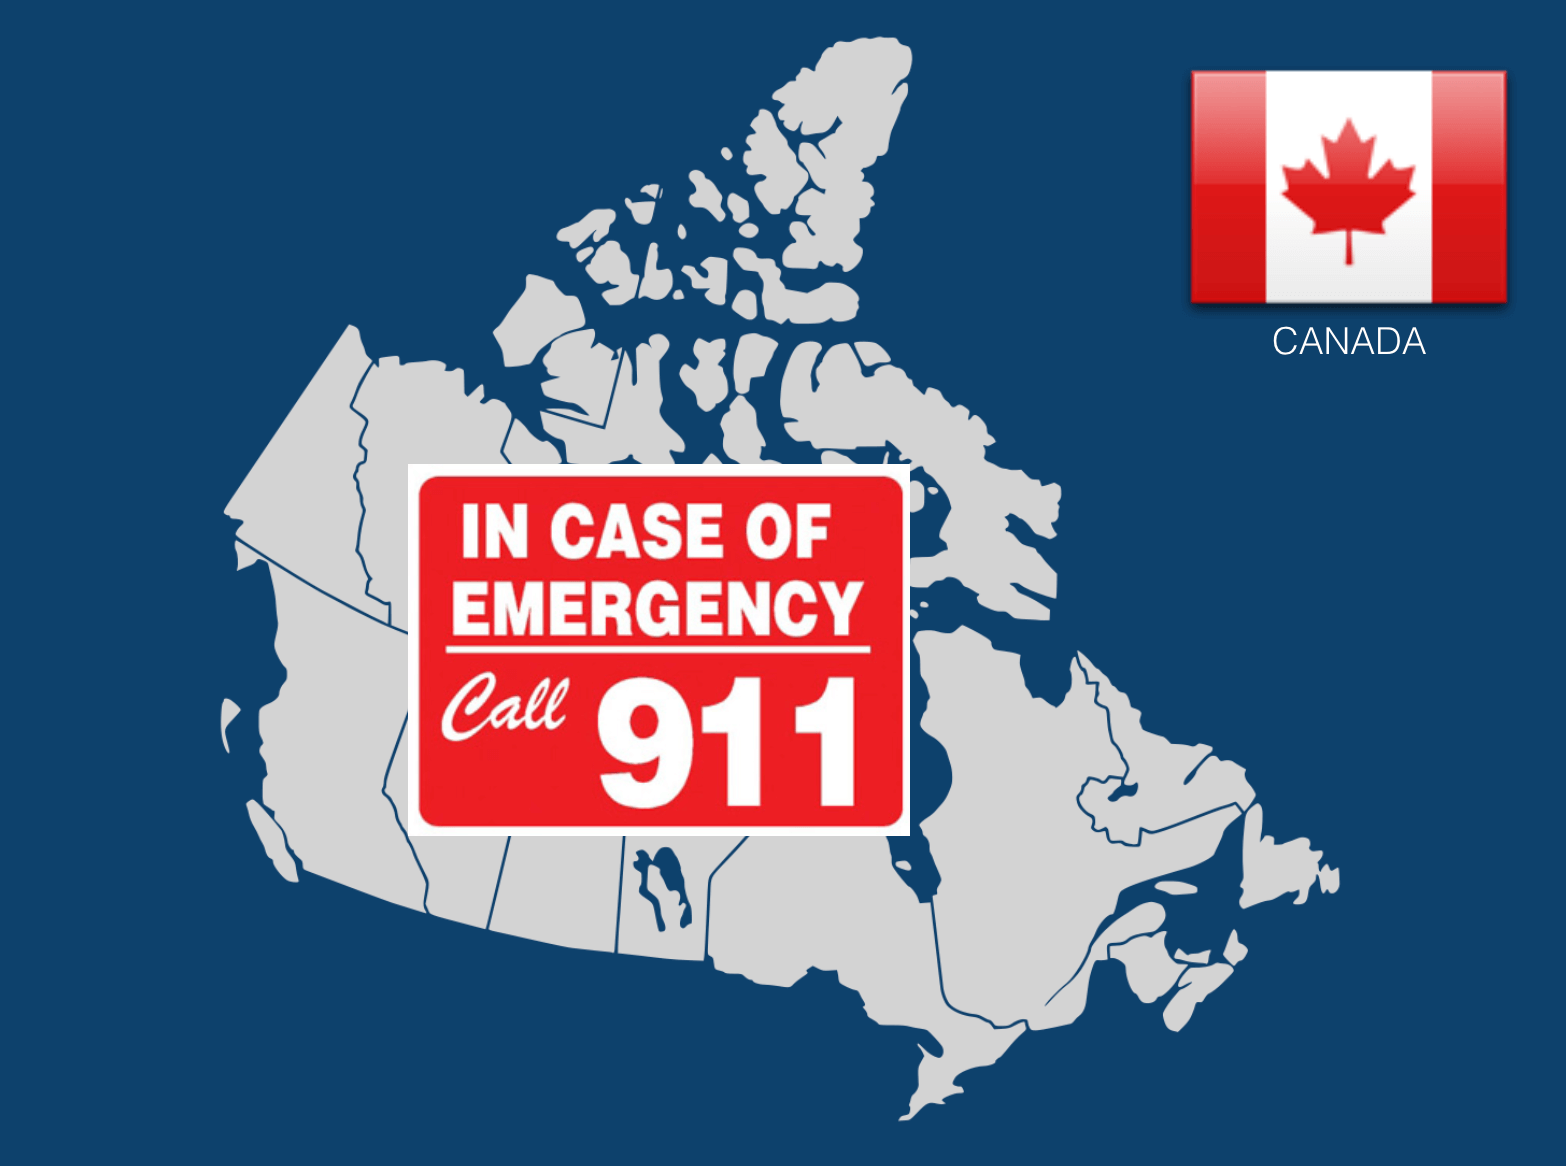 Canada: Ambulance and Emergency Medical Services